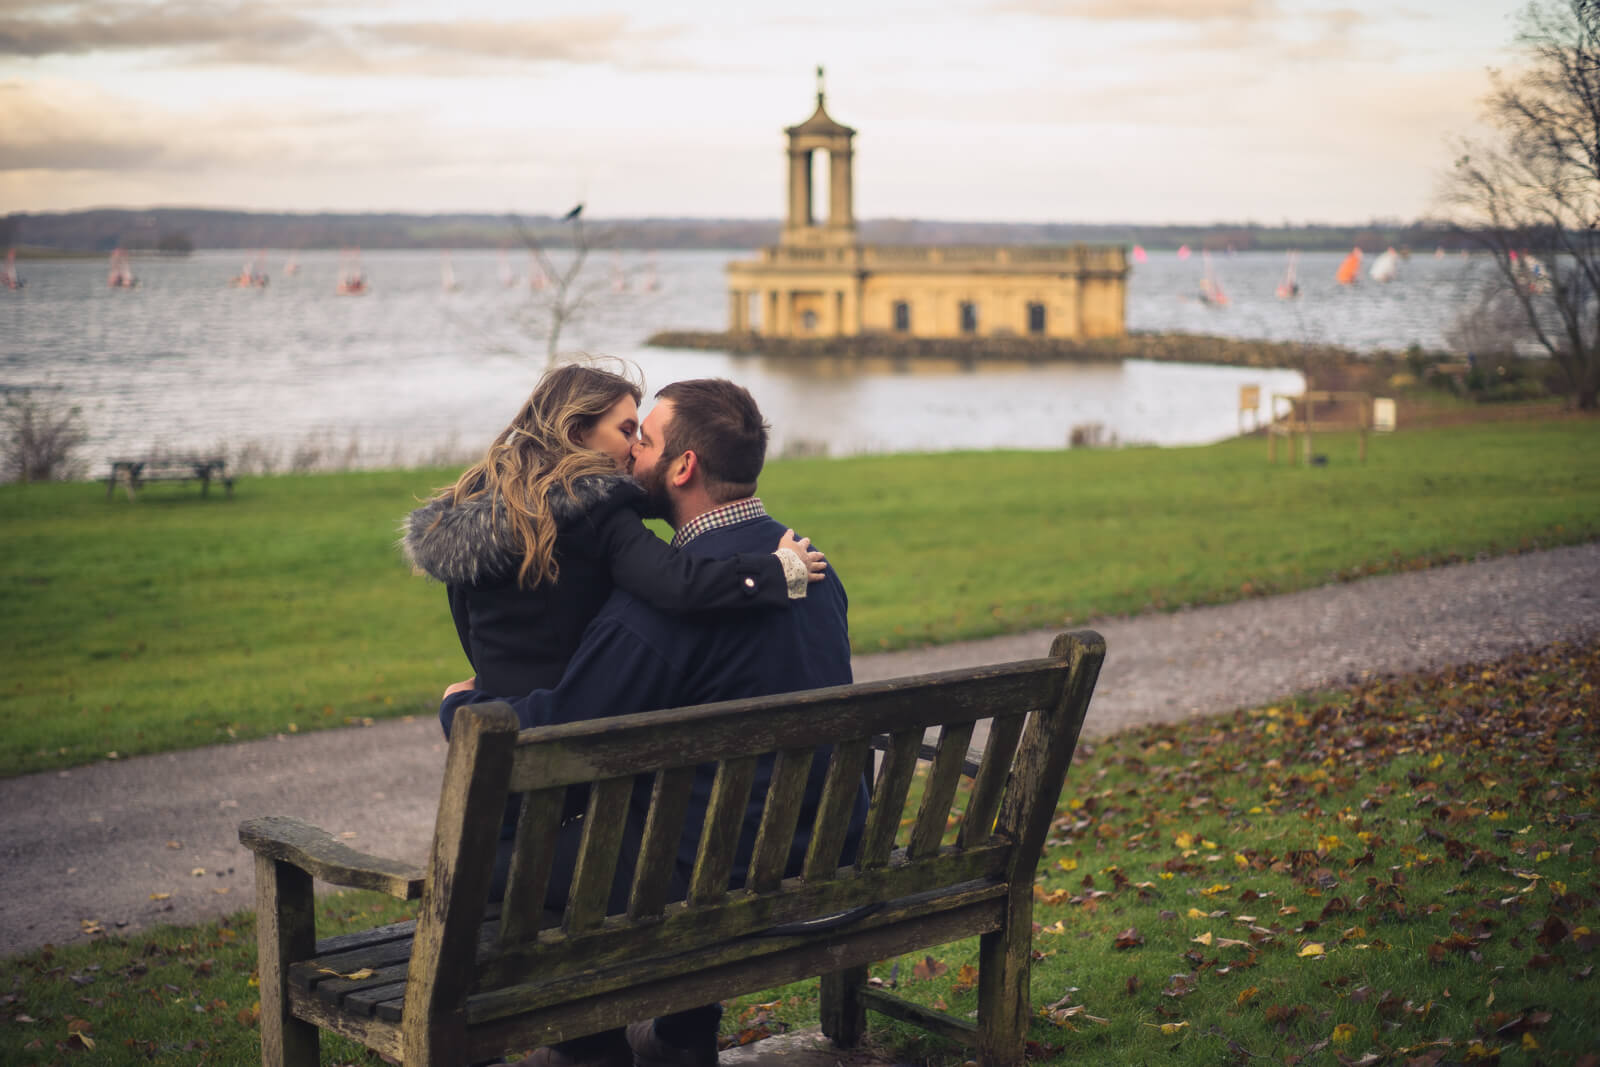 Engaged couple kiss on a bench with Normanton Church in the background